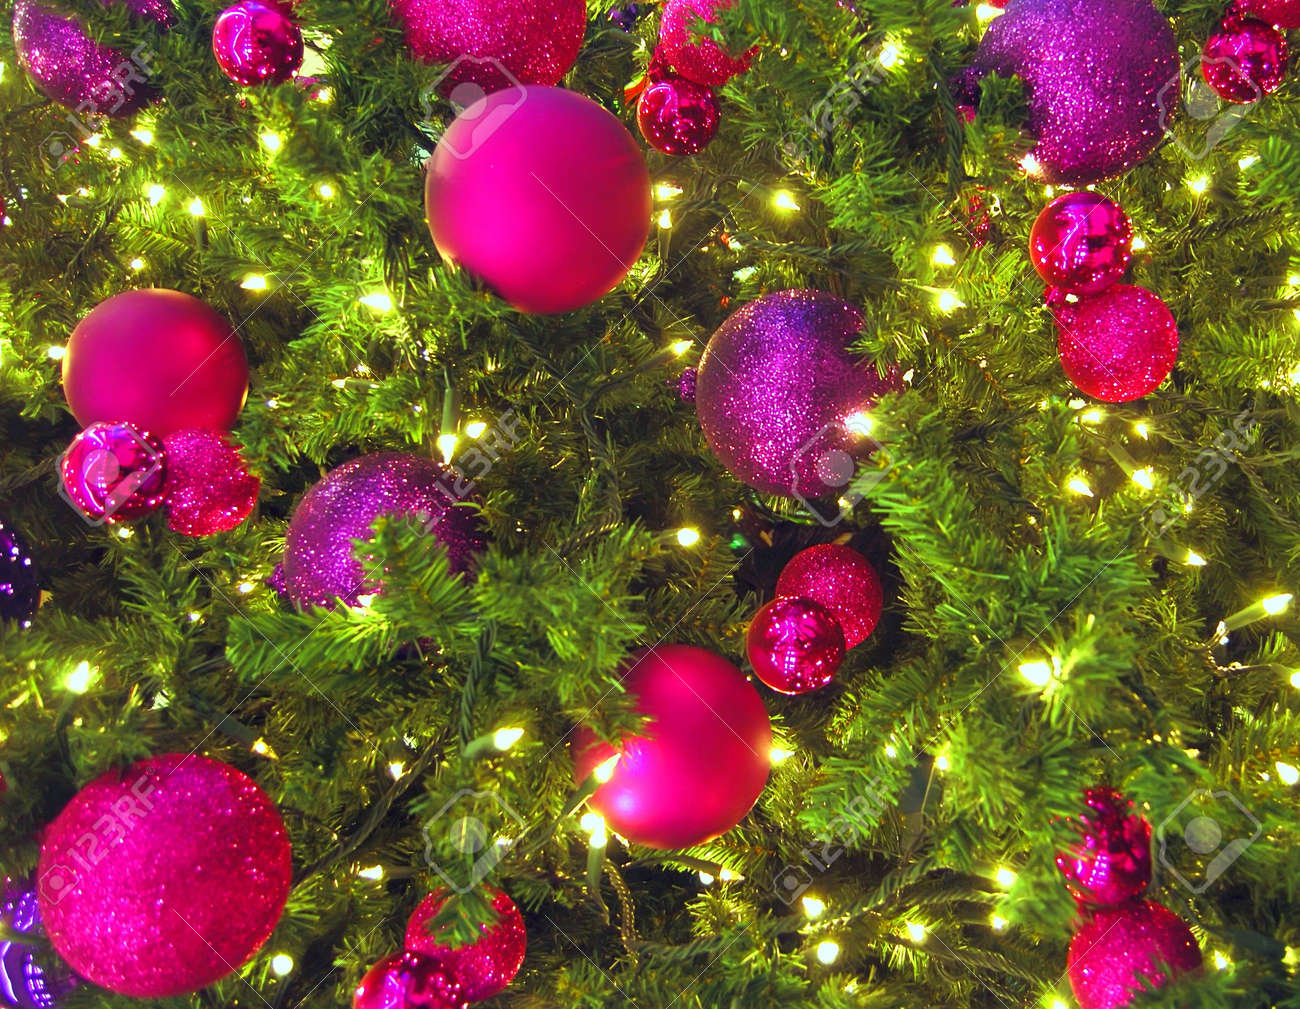 Colorful Christmas Tree Decorations.Close Up Of Colorful Christmas Tree Decorations